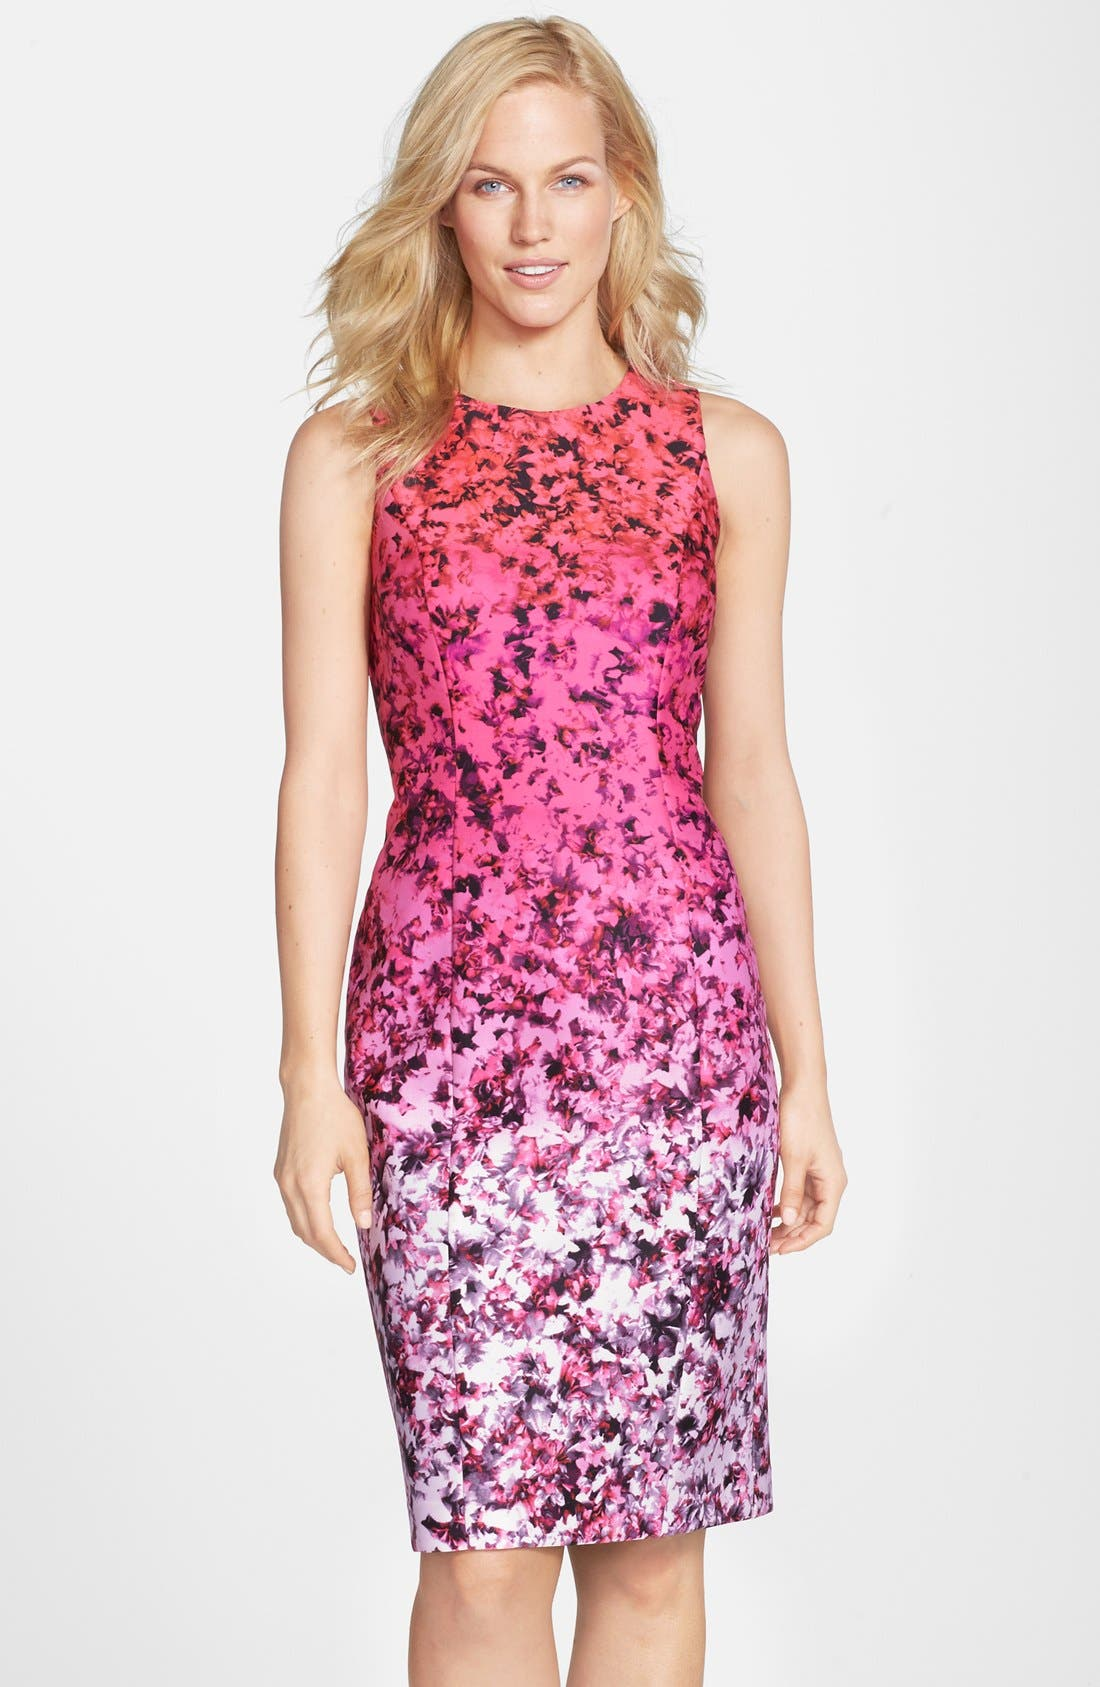 Main Image - Vince Camuto Ombré Floral Print Sleeveless Sheath Dress (Regular & Petite)